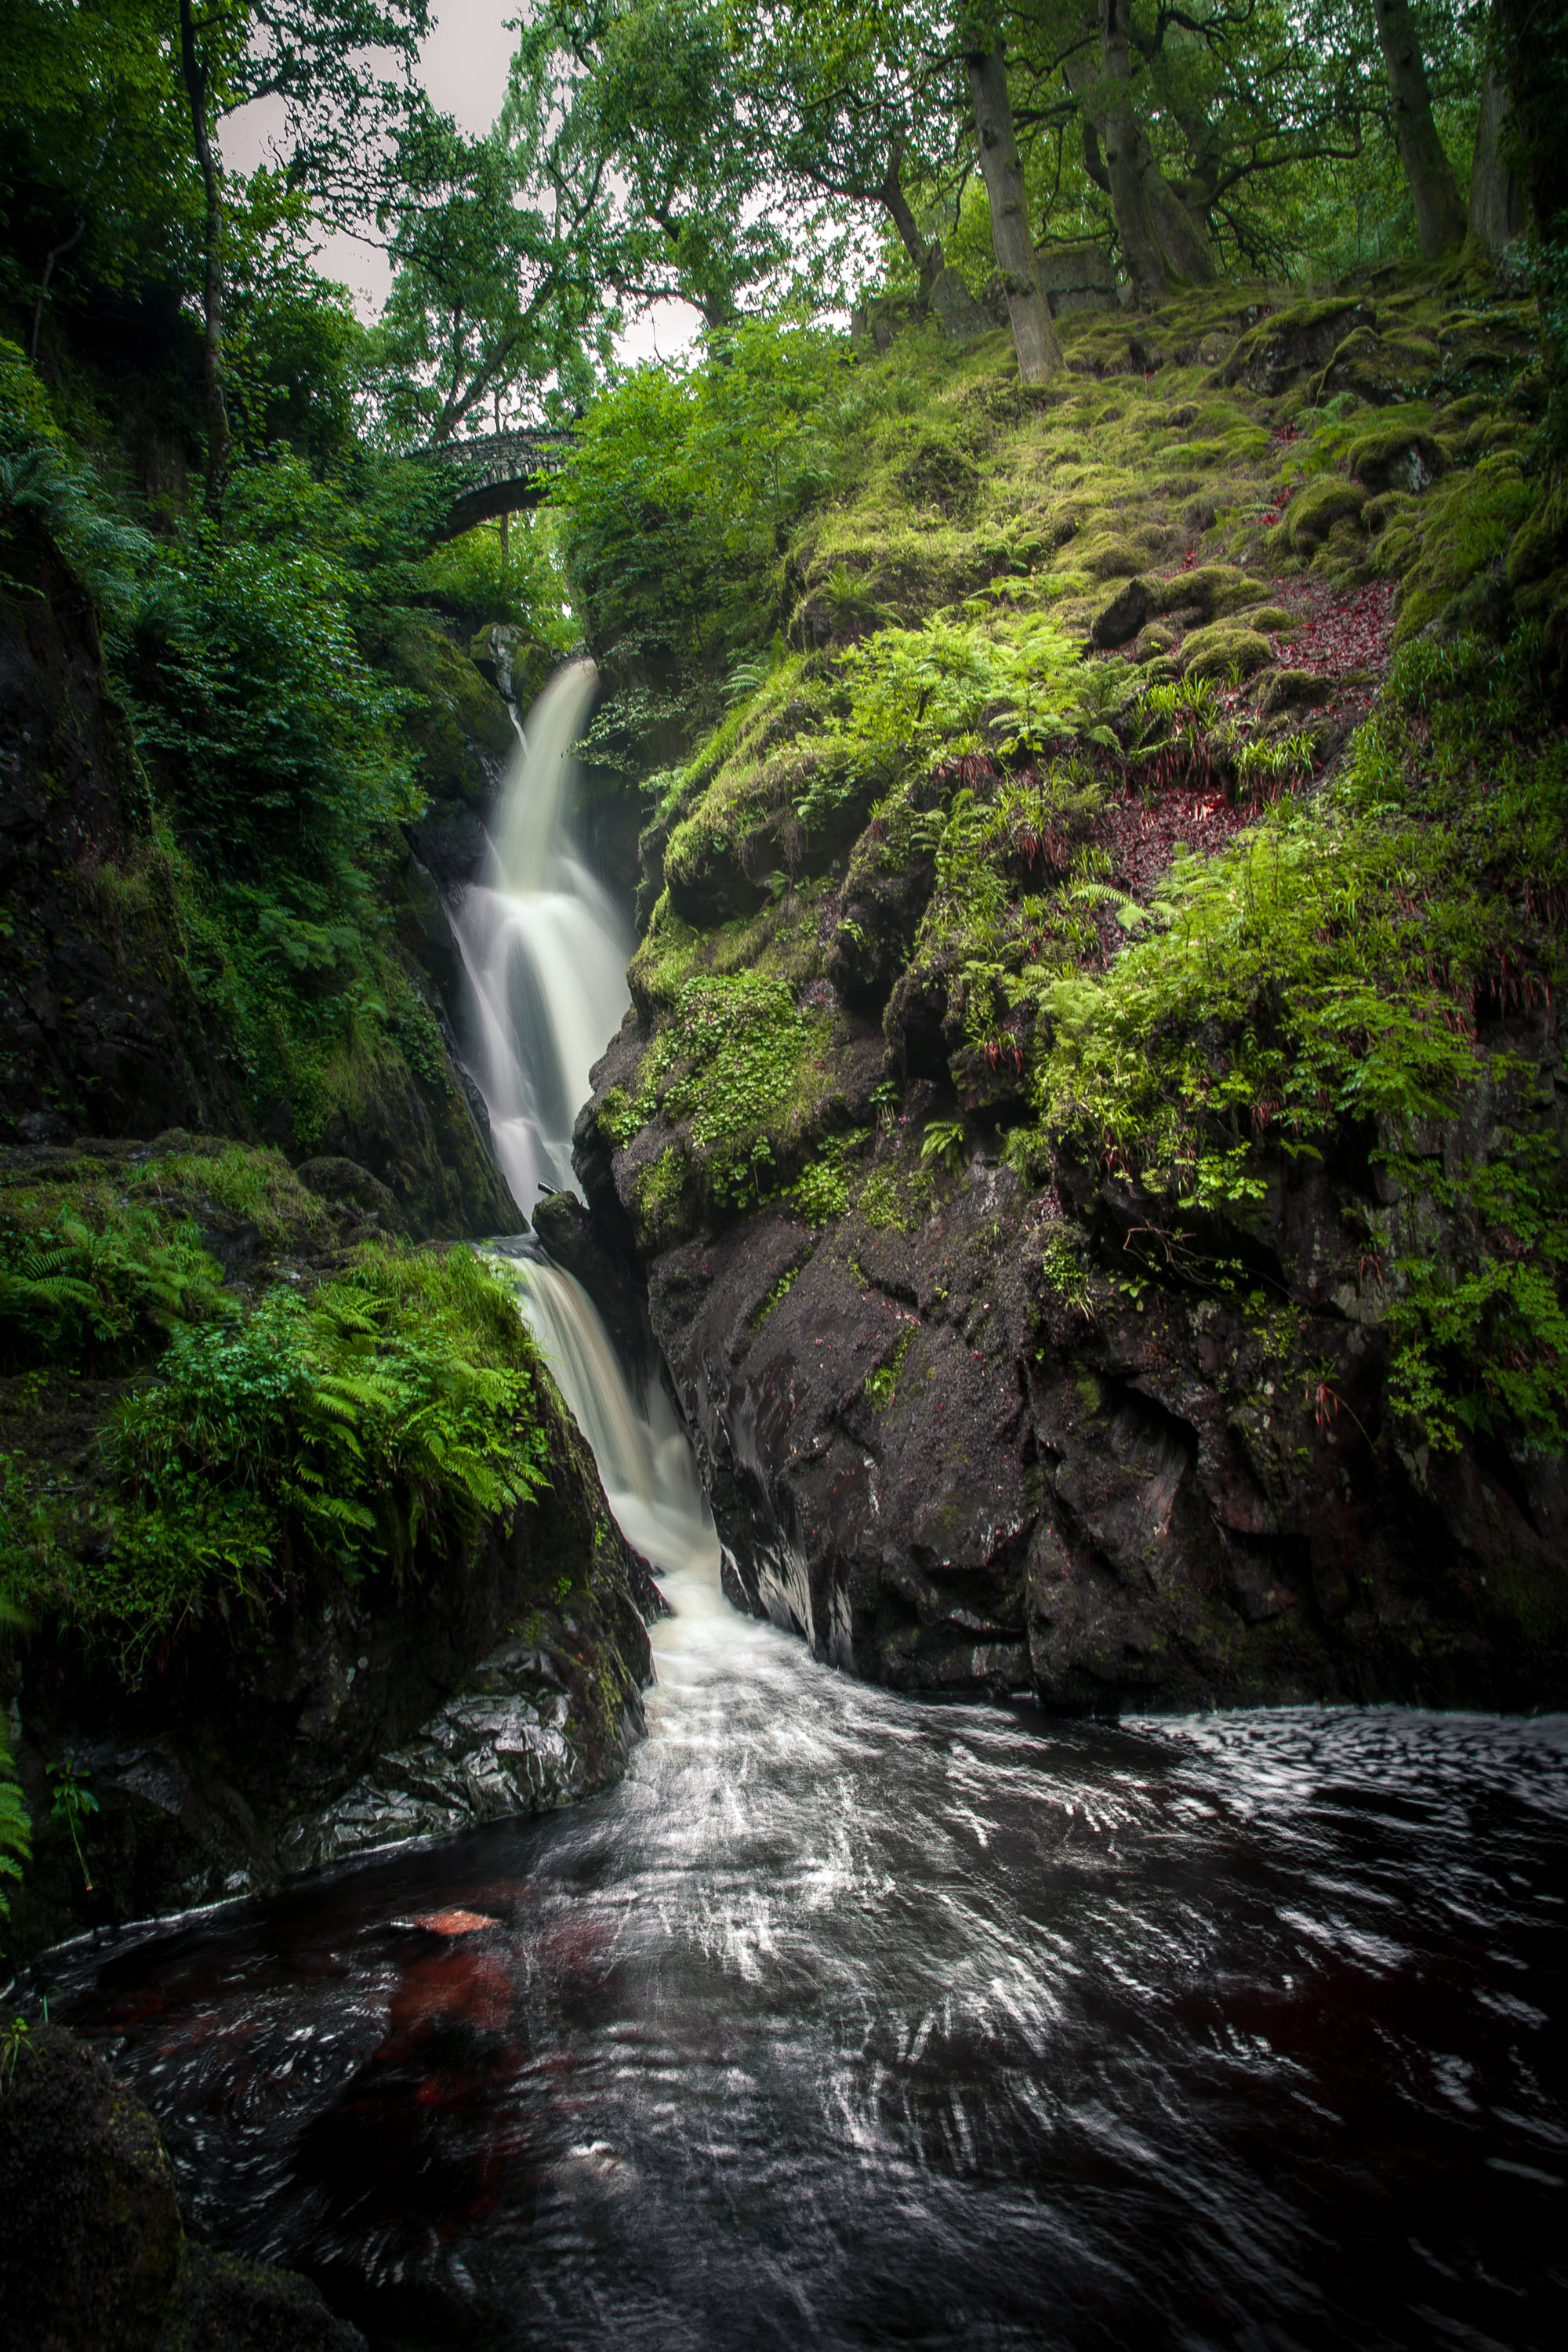 Aira Force Waterfall, The Cumbrian Lake District - England (2016)